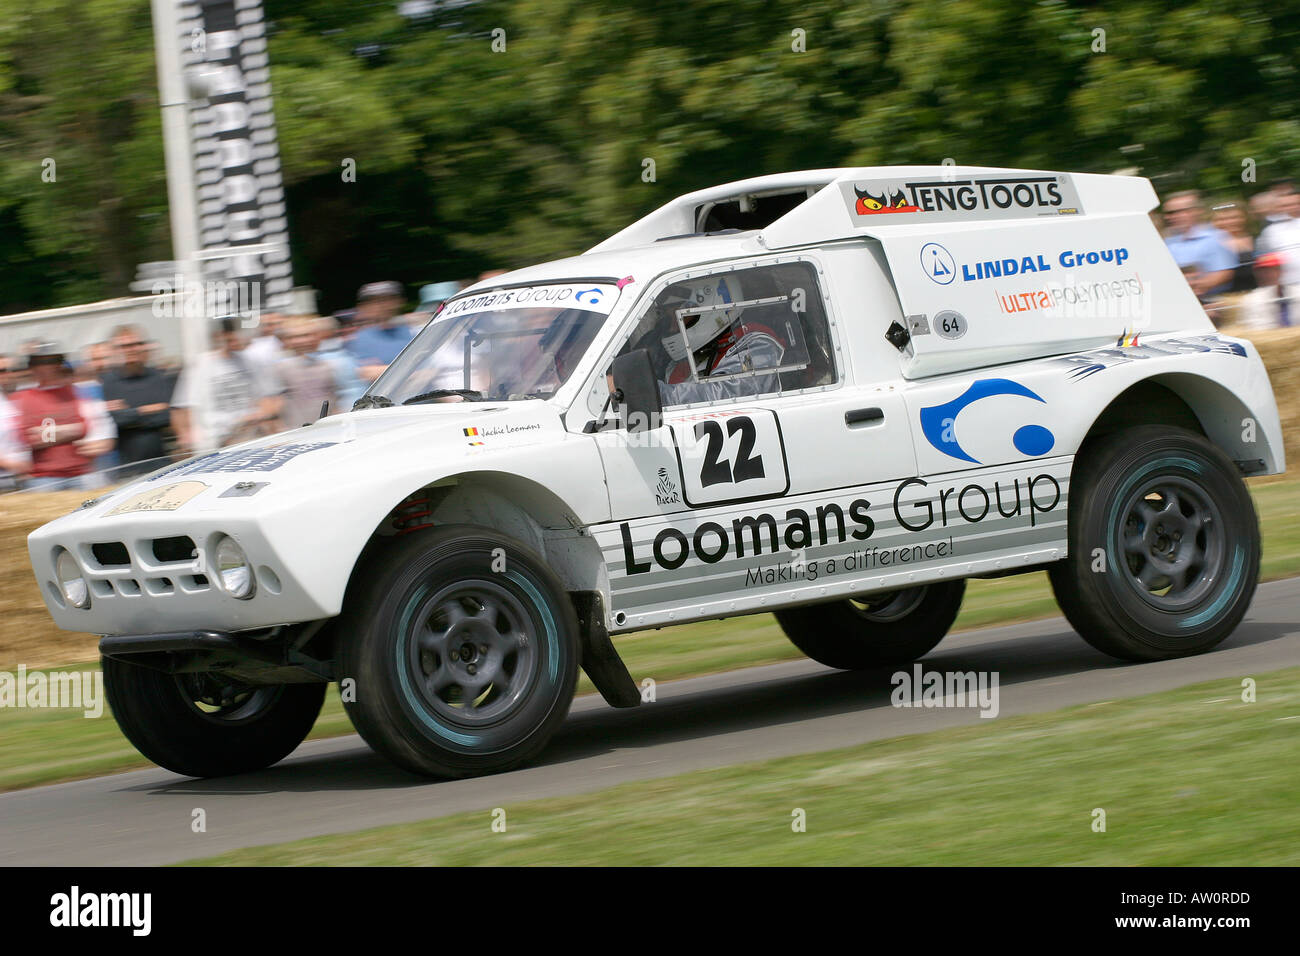 1986 MG Metro 6R4 at Goodwood Festival of Speed, Sussex, UK. - Stock Image